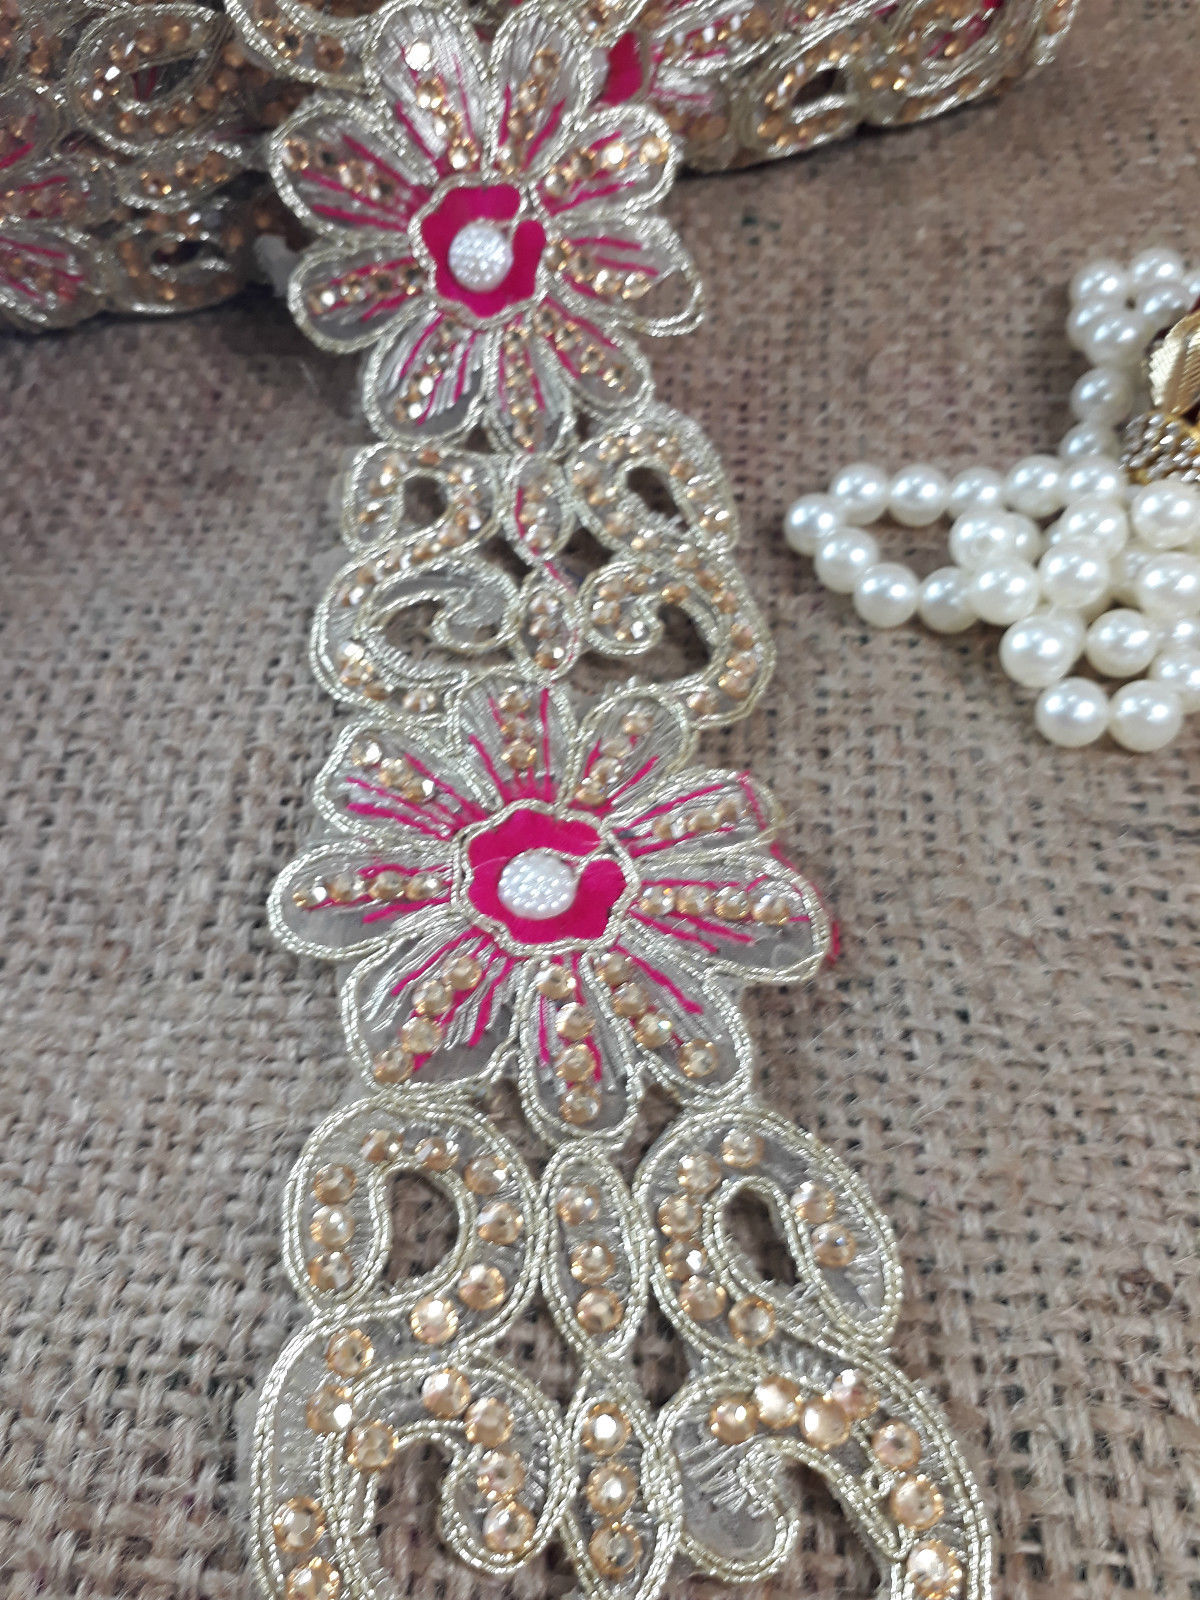 venice lace trim sewing trims and embellishments Gold Rani Pink, Gold Guipure Lace, Cutwork, Applique, Embroidered, Hand Beaded, Edging Polyester Less than 3 inch